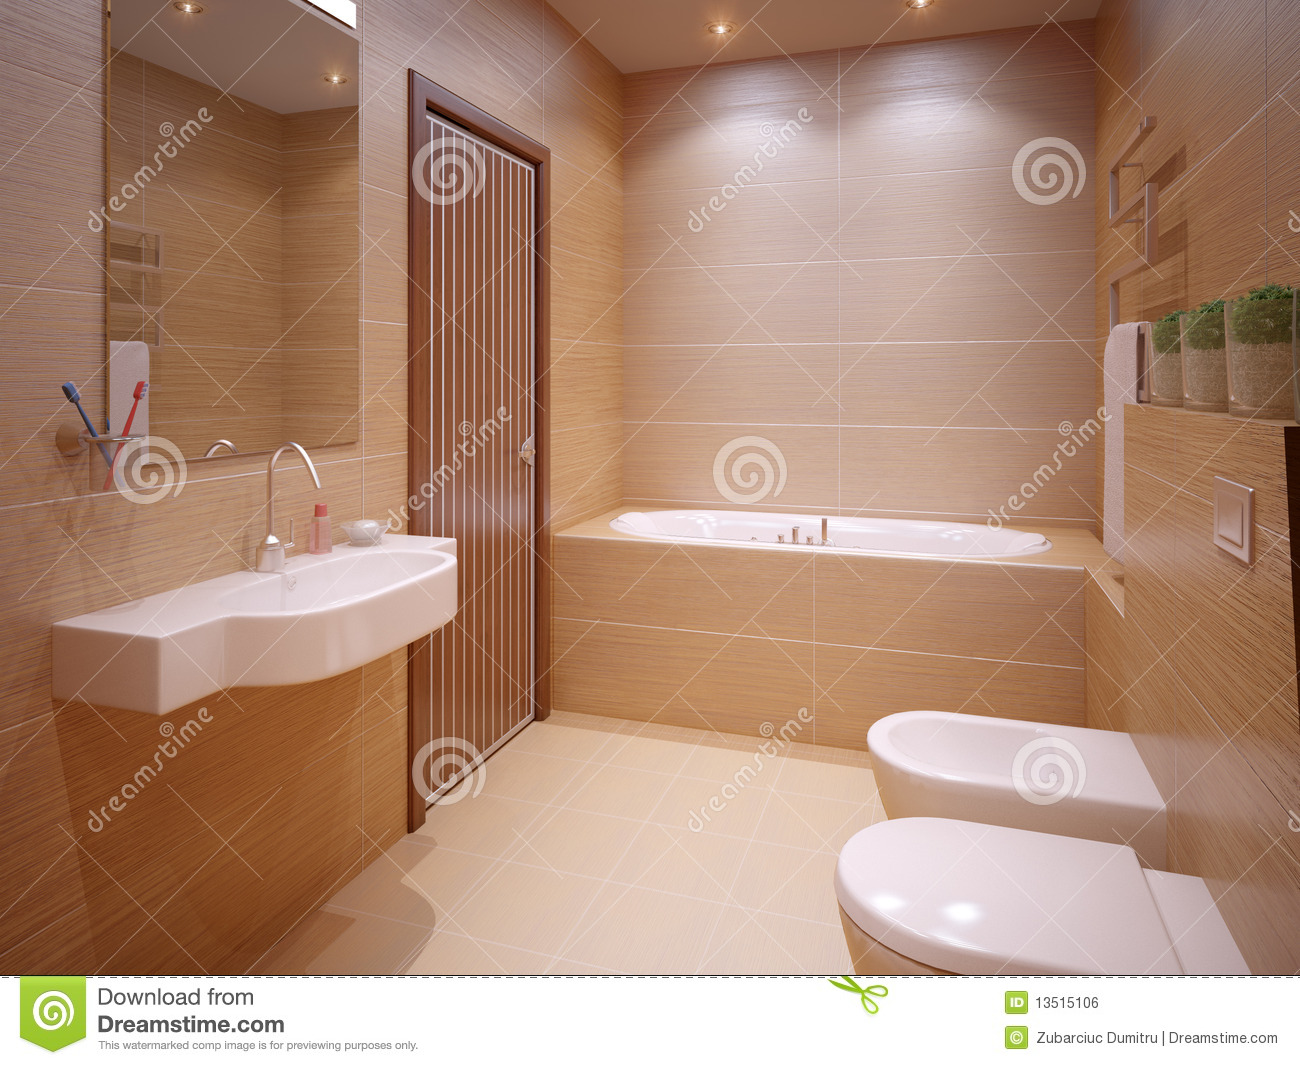 Prepossessing 25 nice bathroom design ideas of nice for Nice bathroom ideas